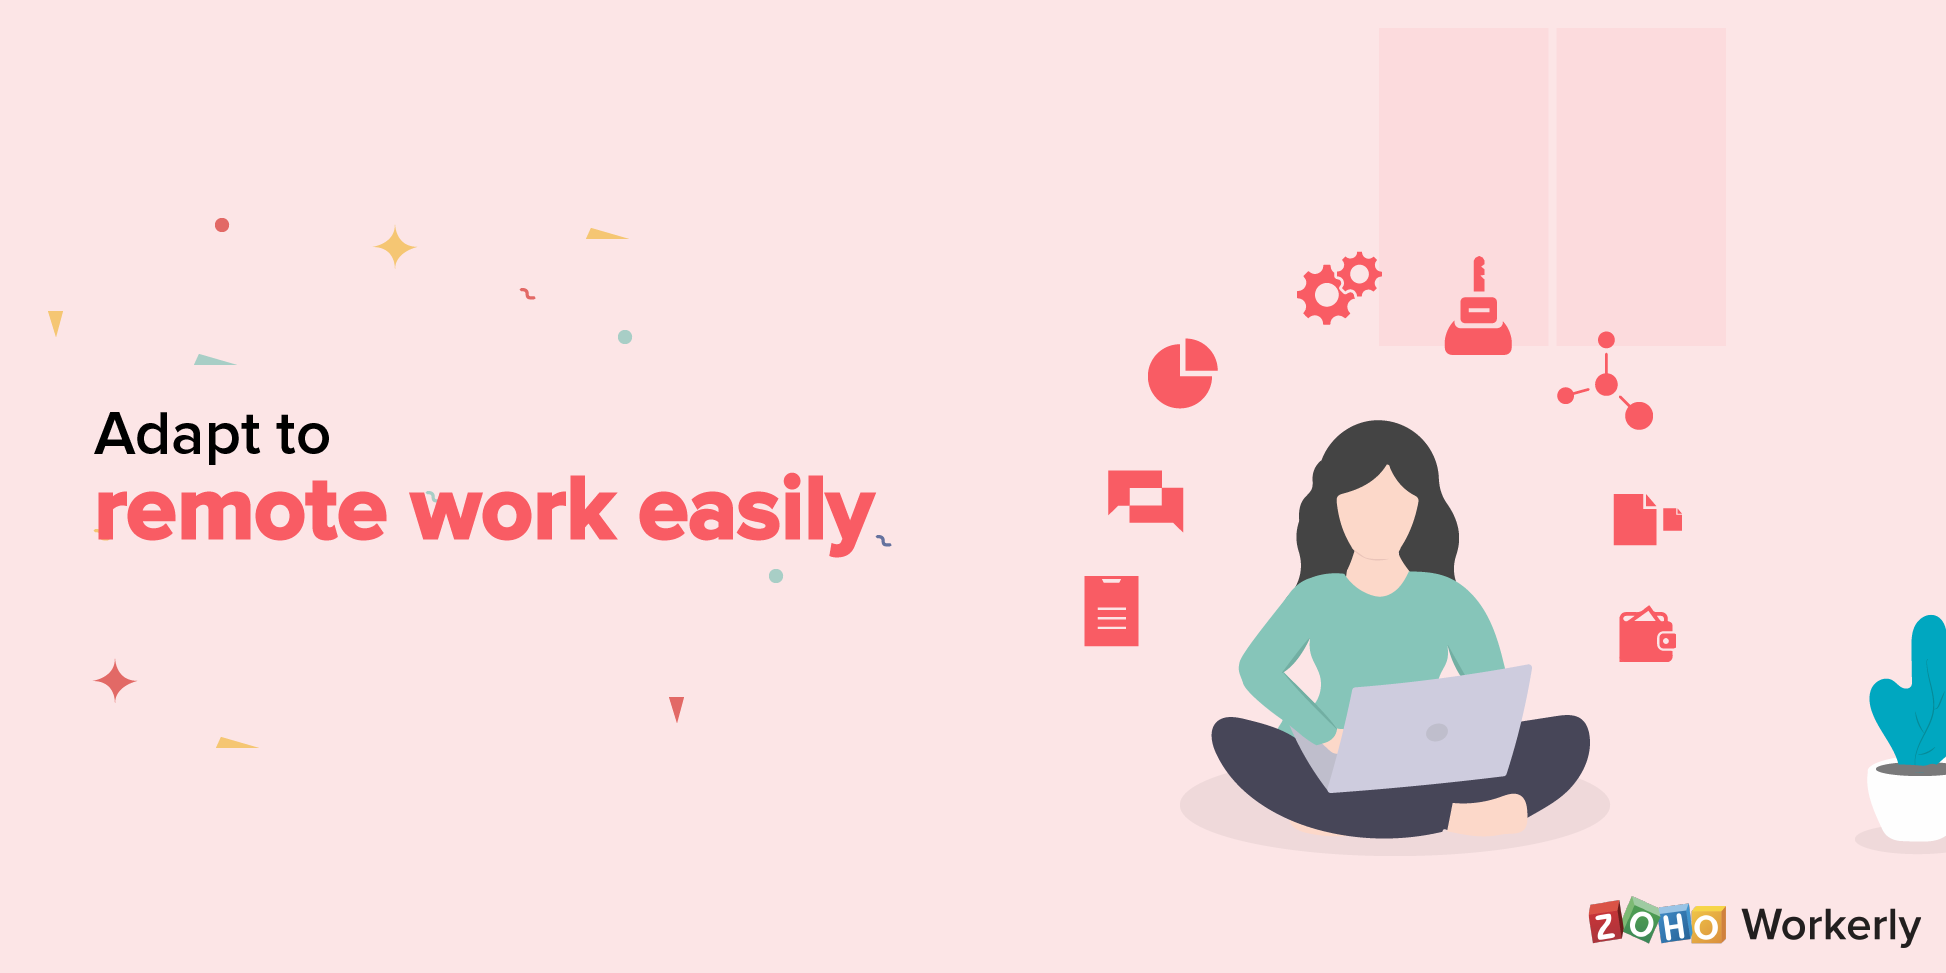 Here are 5 must-try features in Zoho Workerly for remote staffing